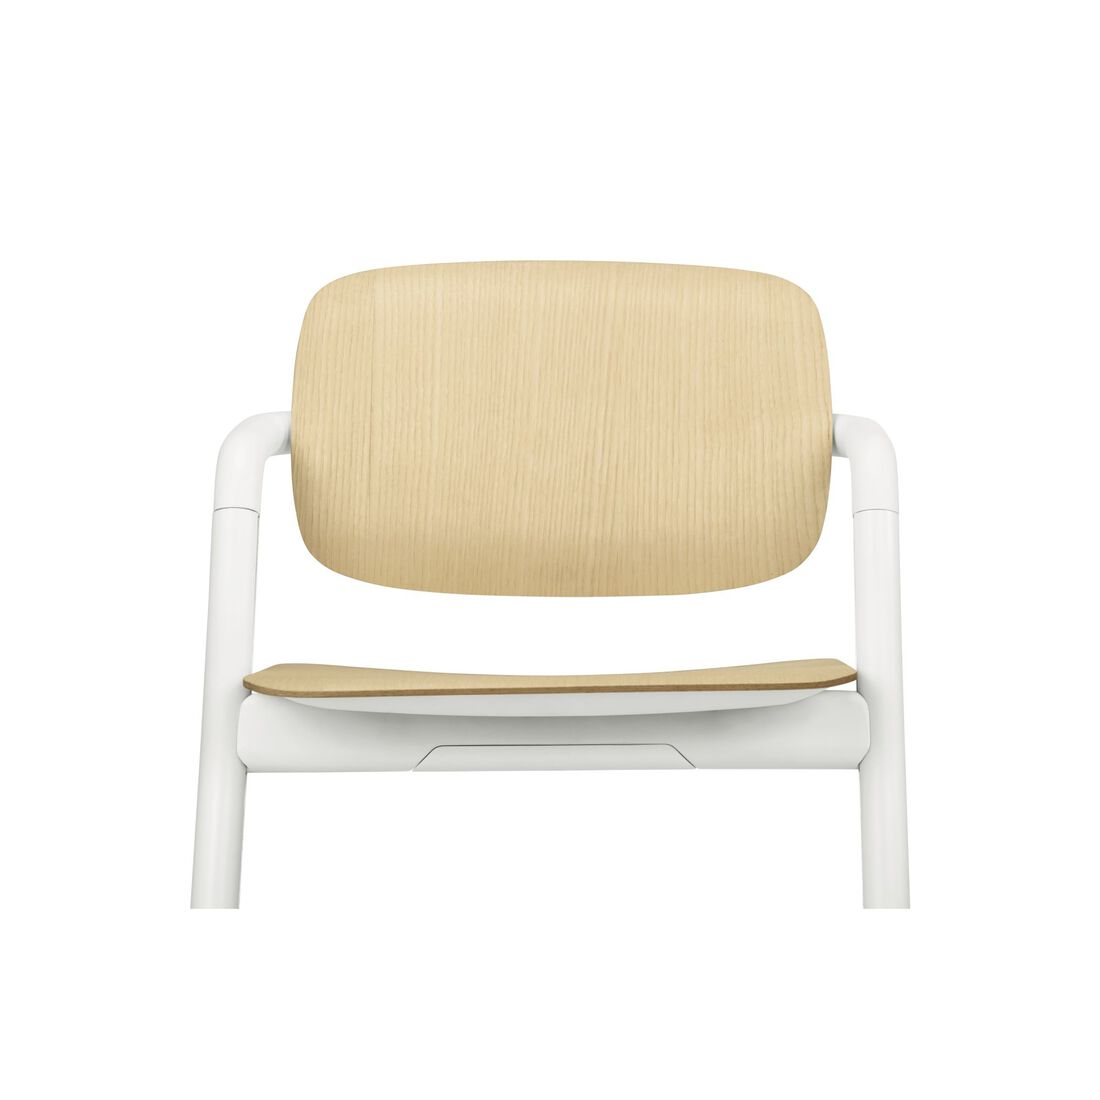 CYBEX Lemo Chair - Porcelaine White (Wood) in Porcelaine White (Wood) large image number 3